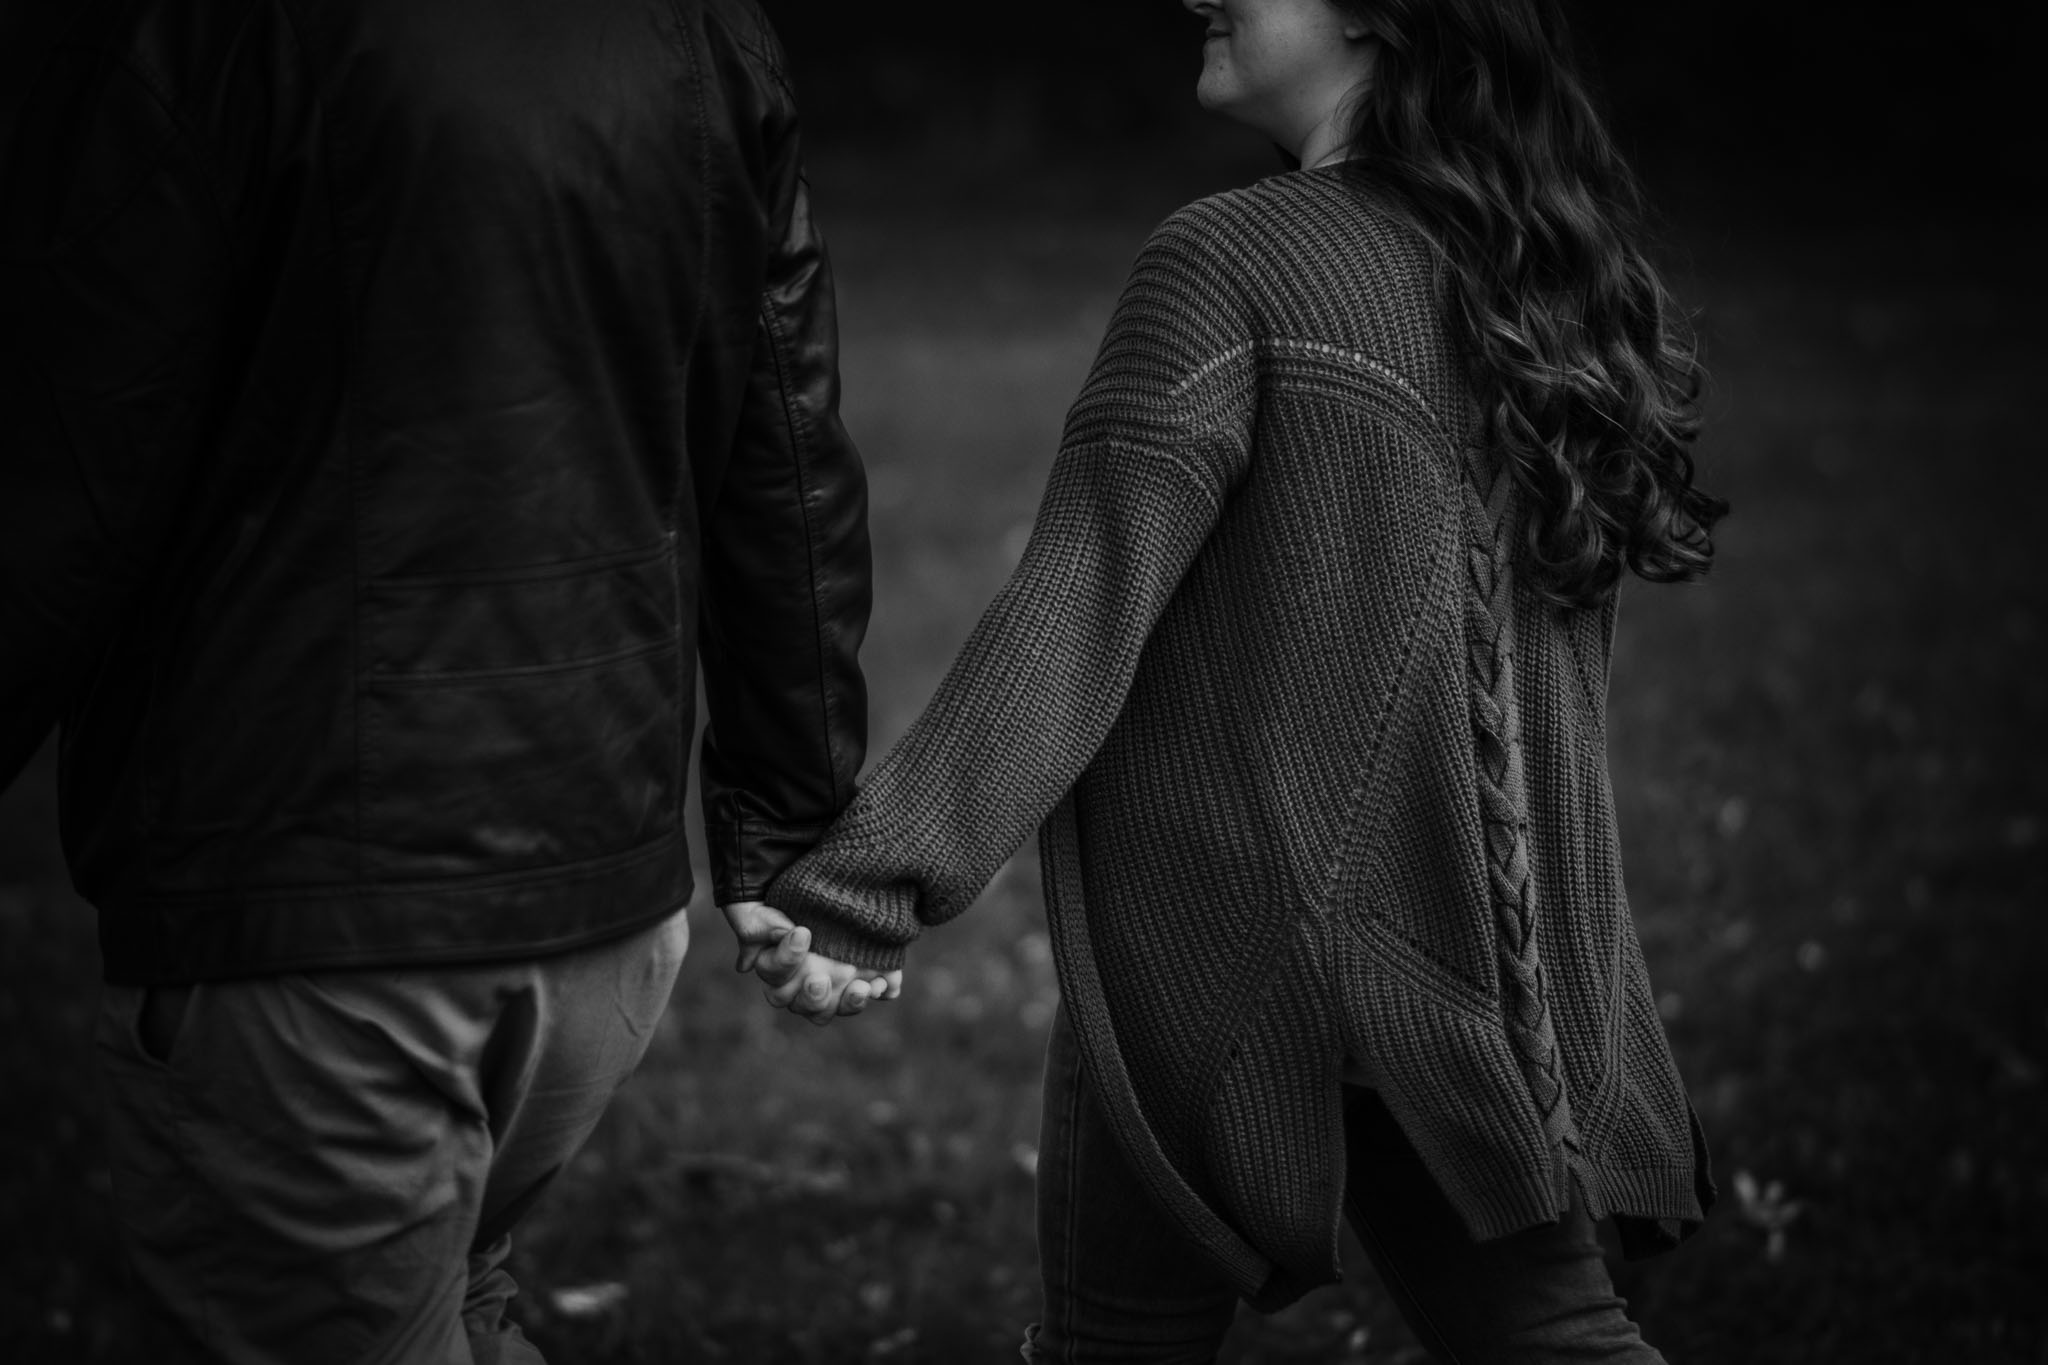 Hand holding moment while walking through park in black and white